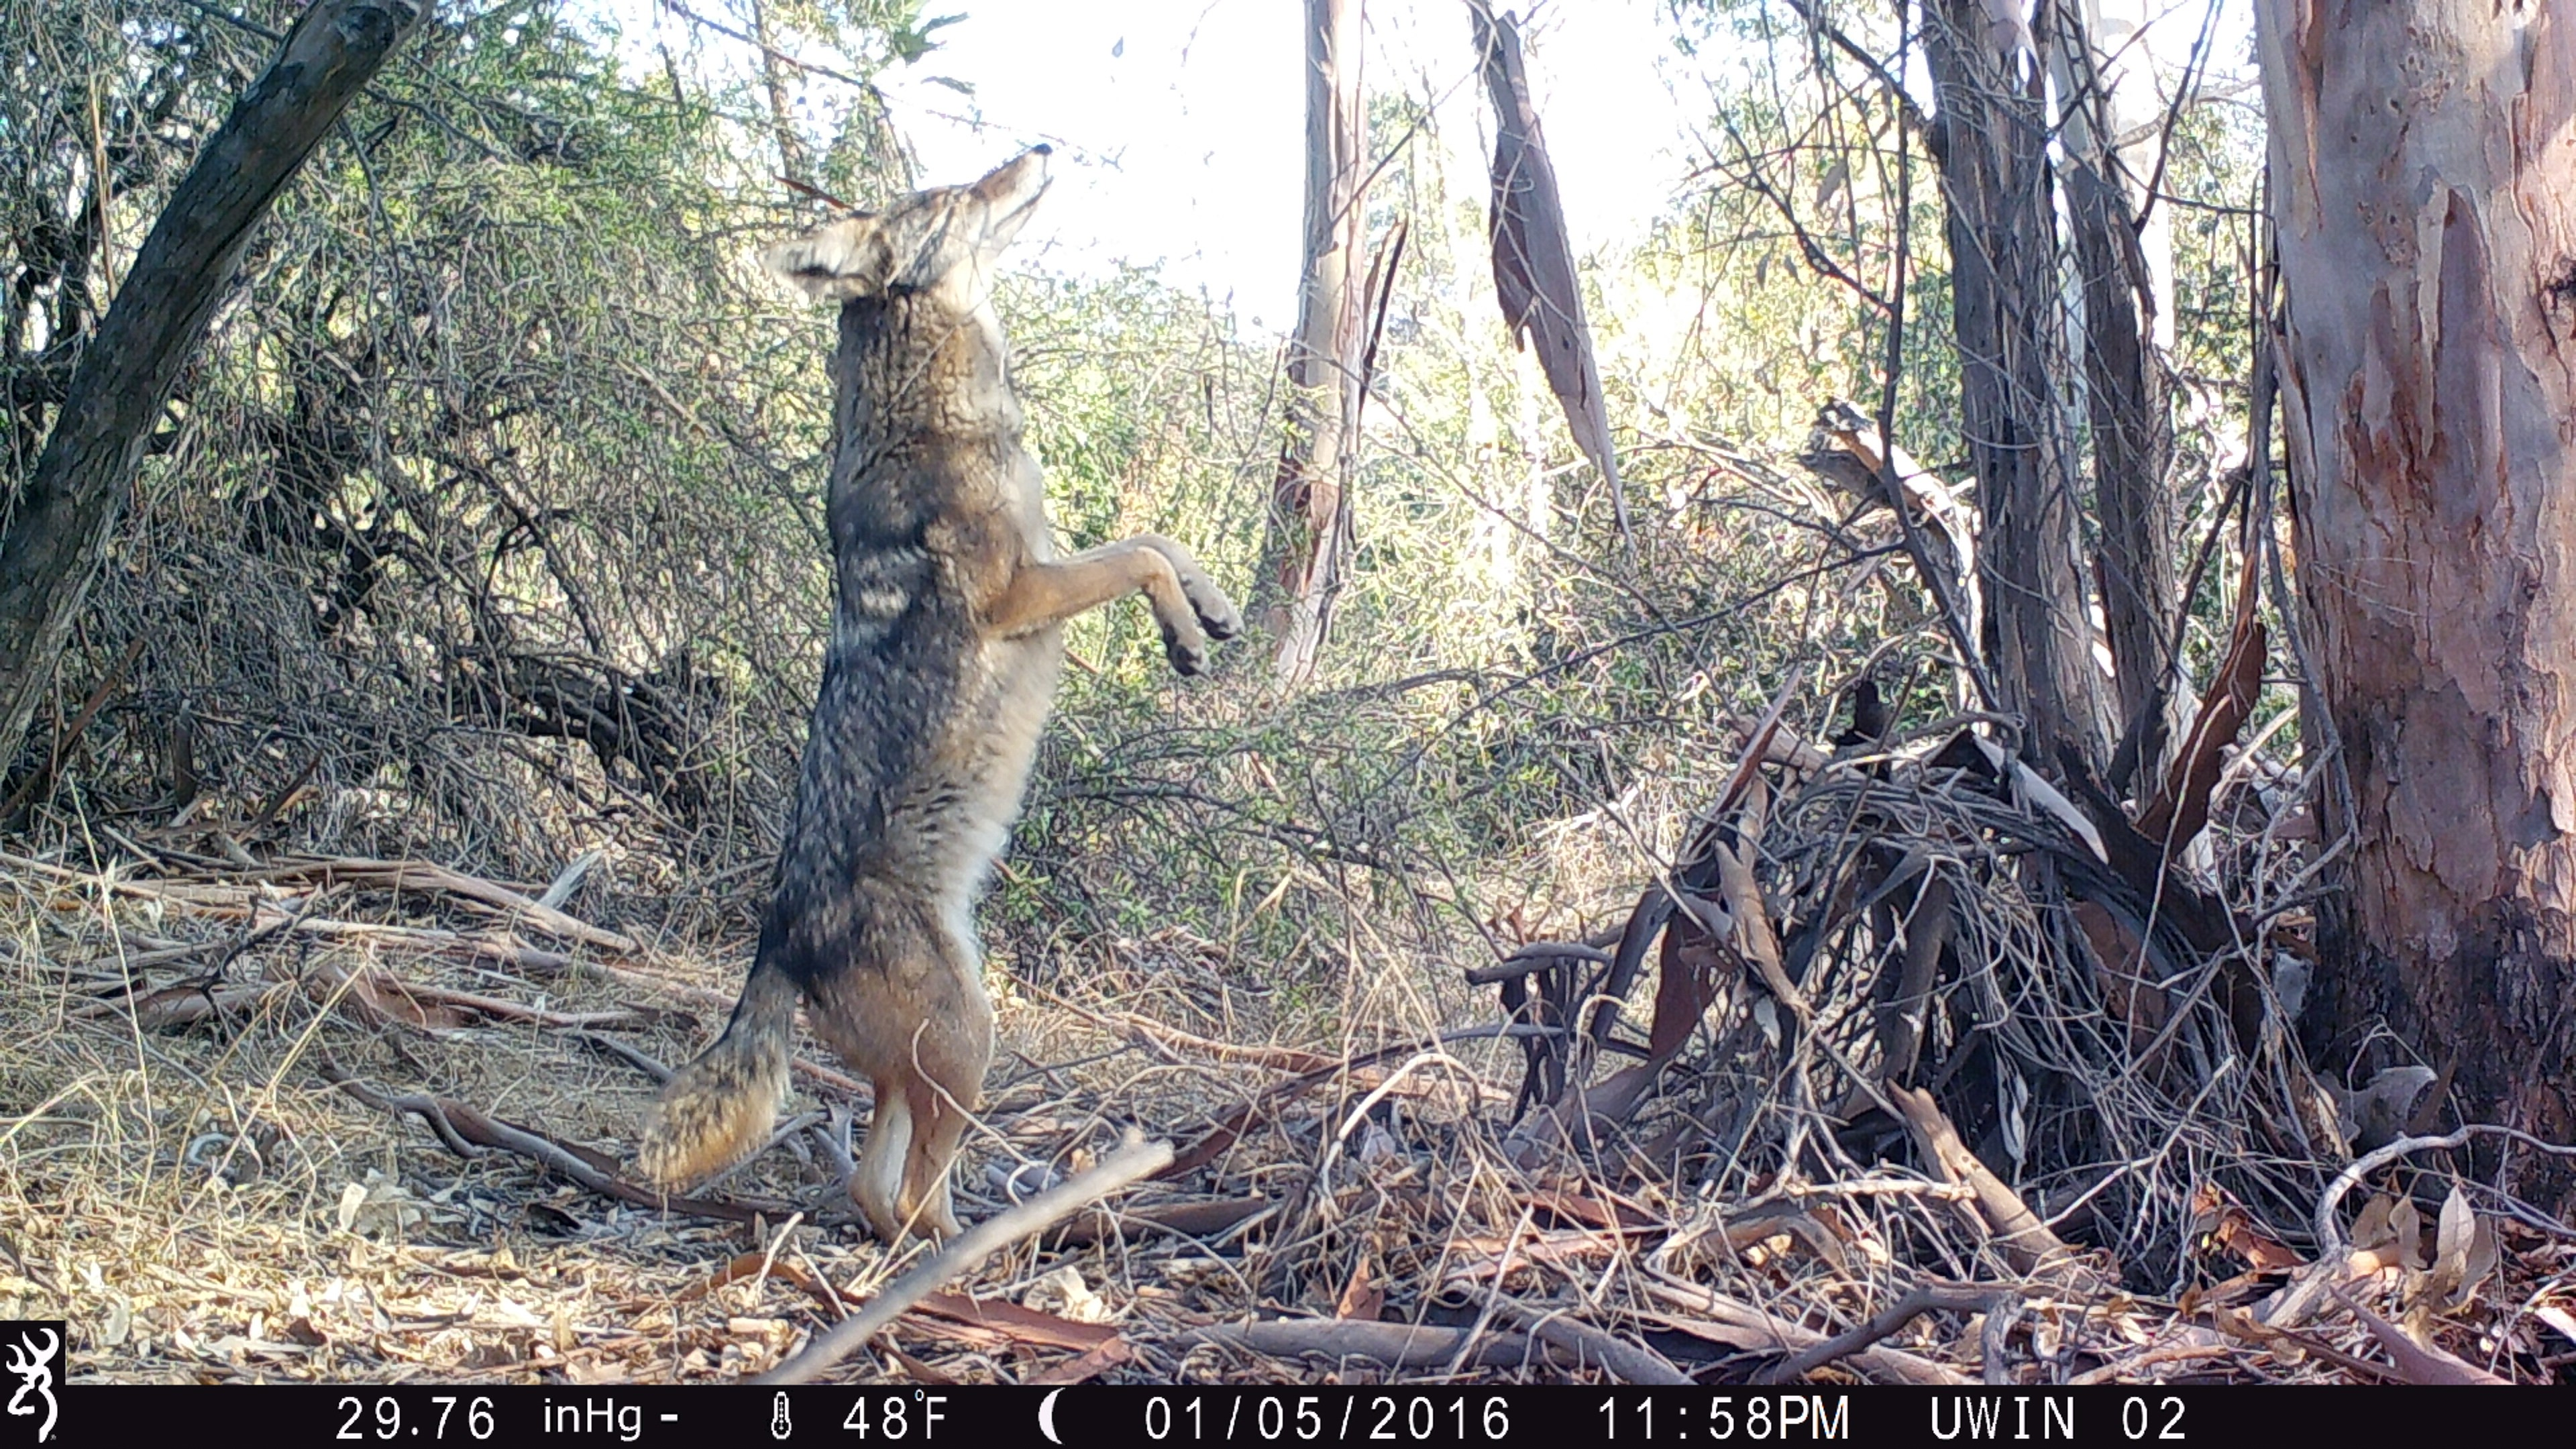 Here's why there are so many coyotes and why they are